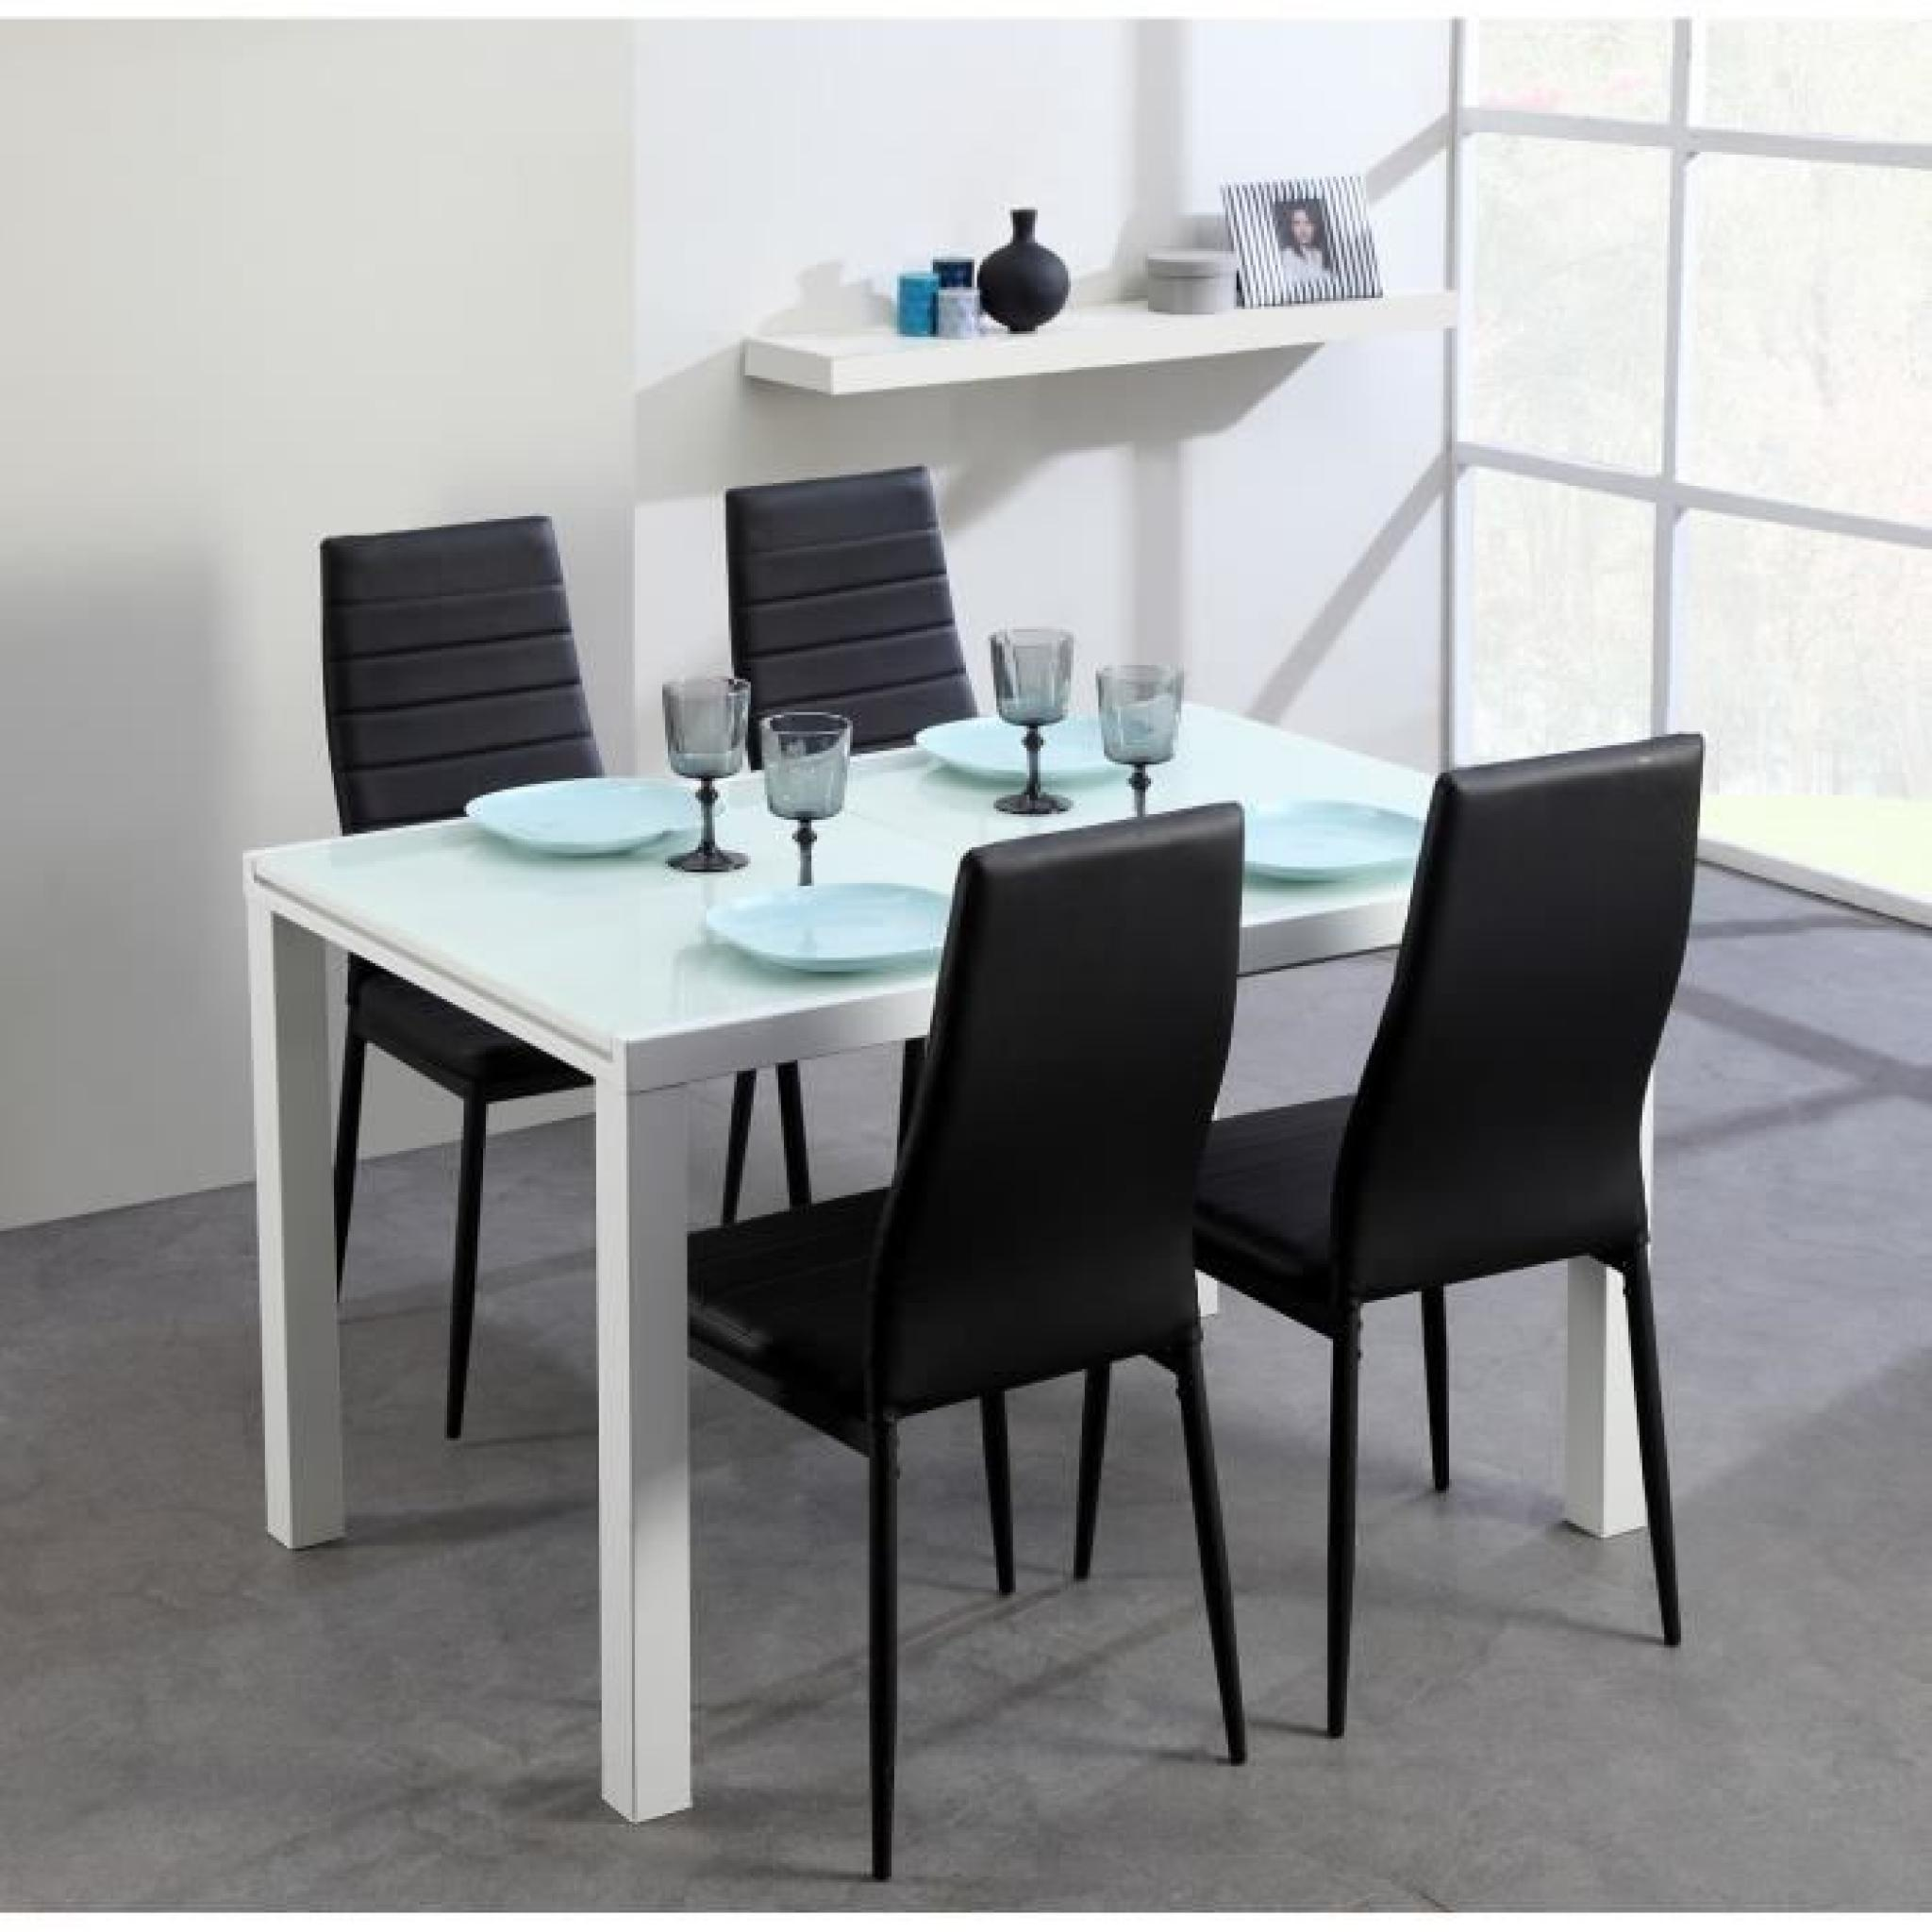 roma table extensible 120 180cm verre blanc achat vente. Black Bedroom Furniture Sets. Home Design Ideas